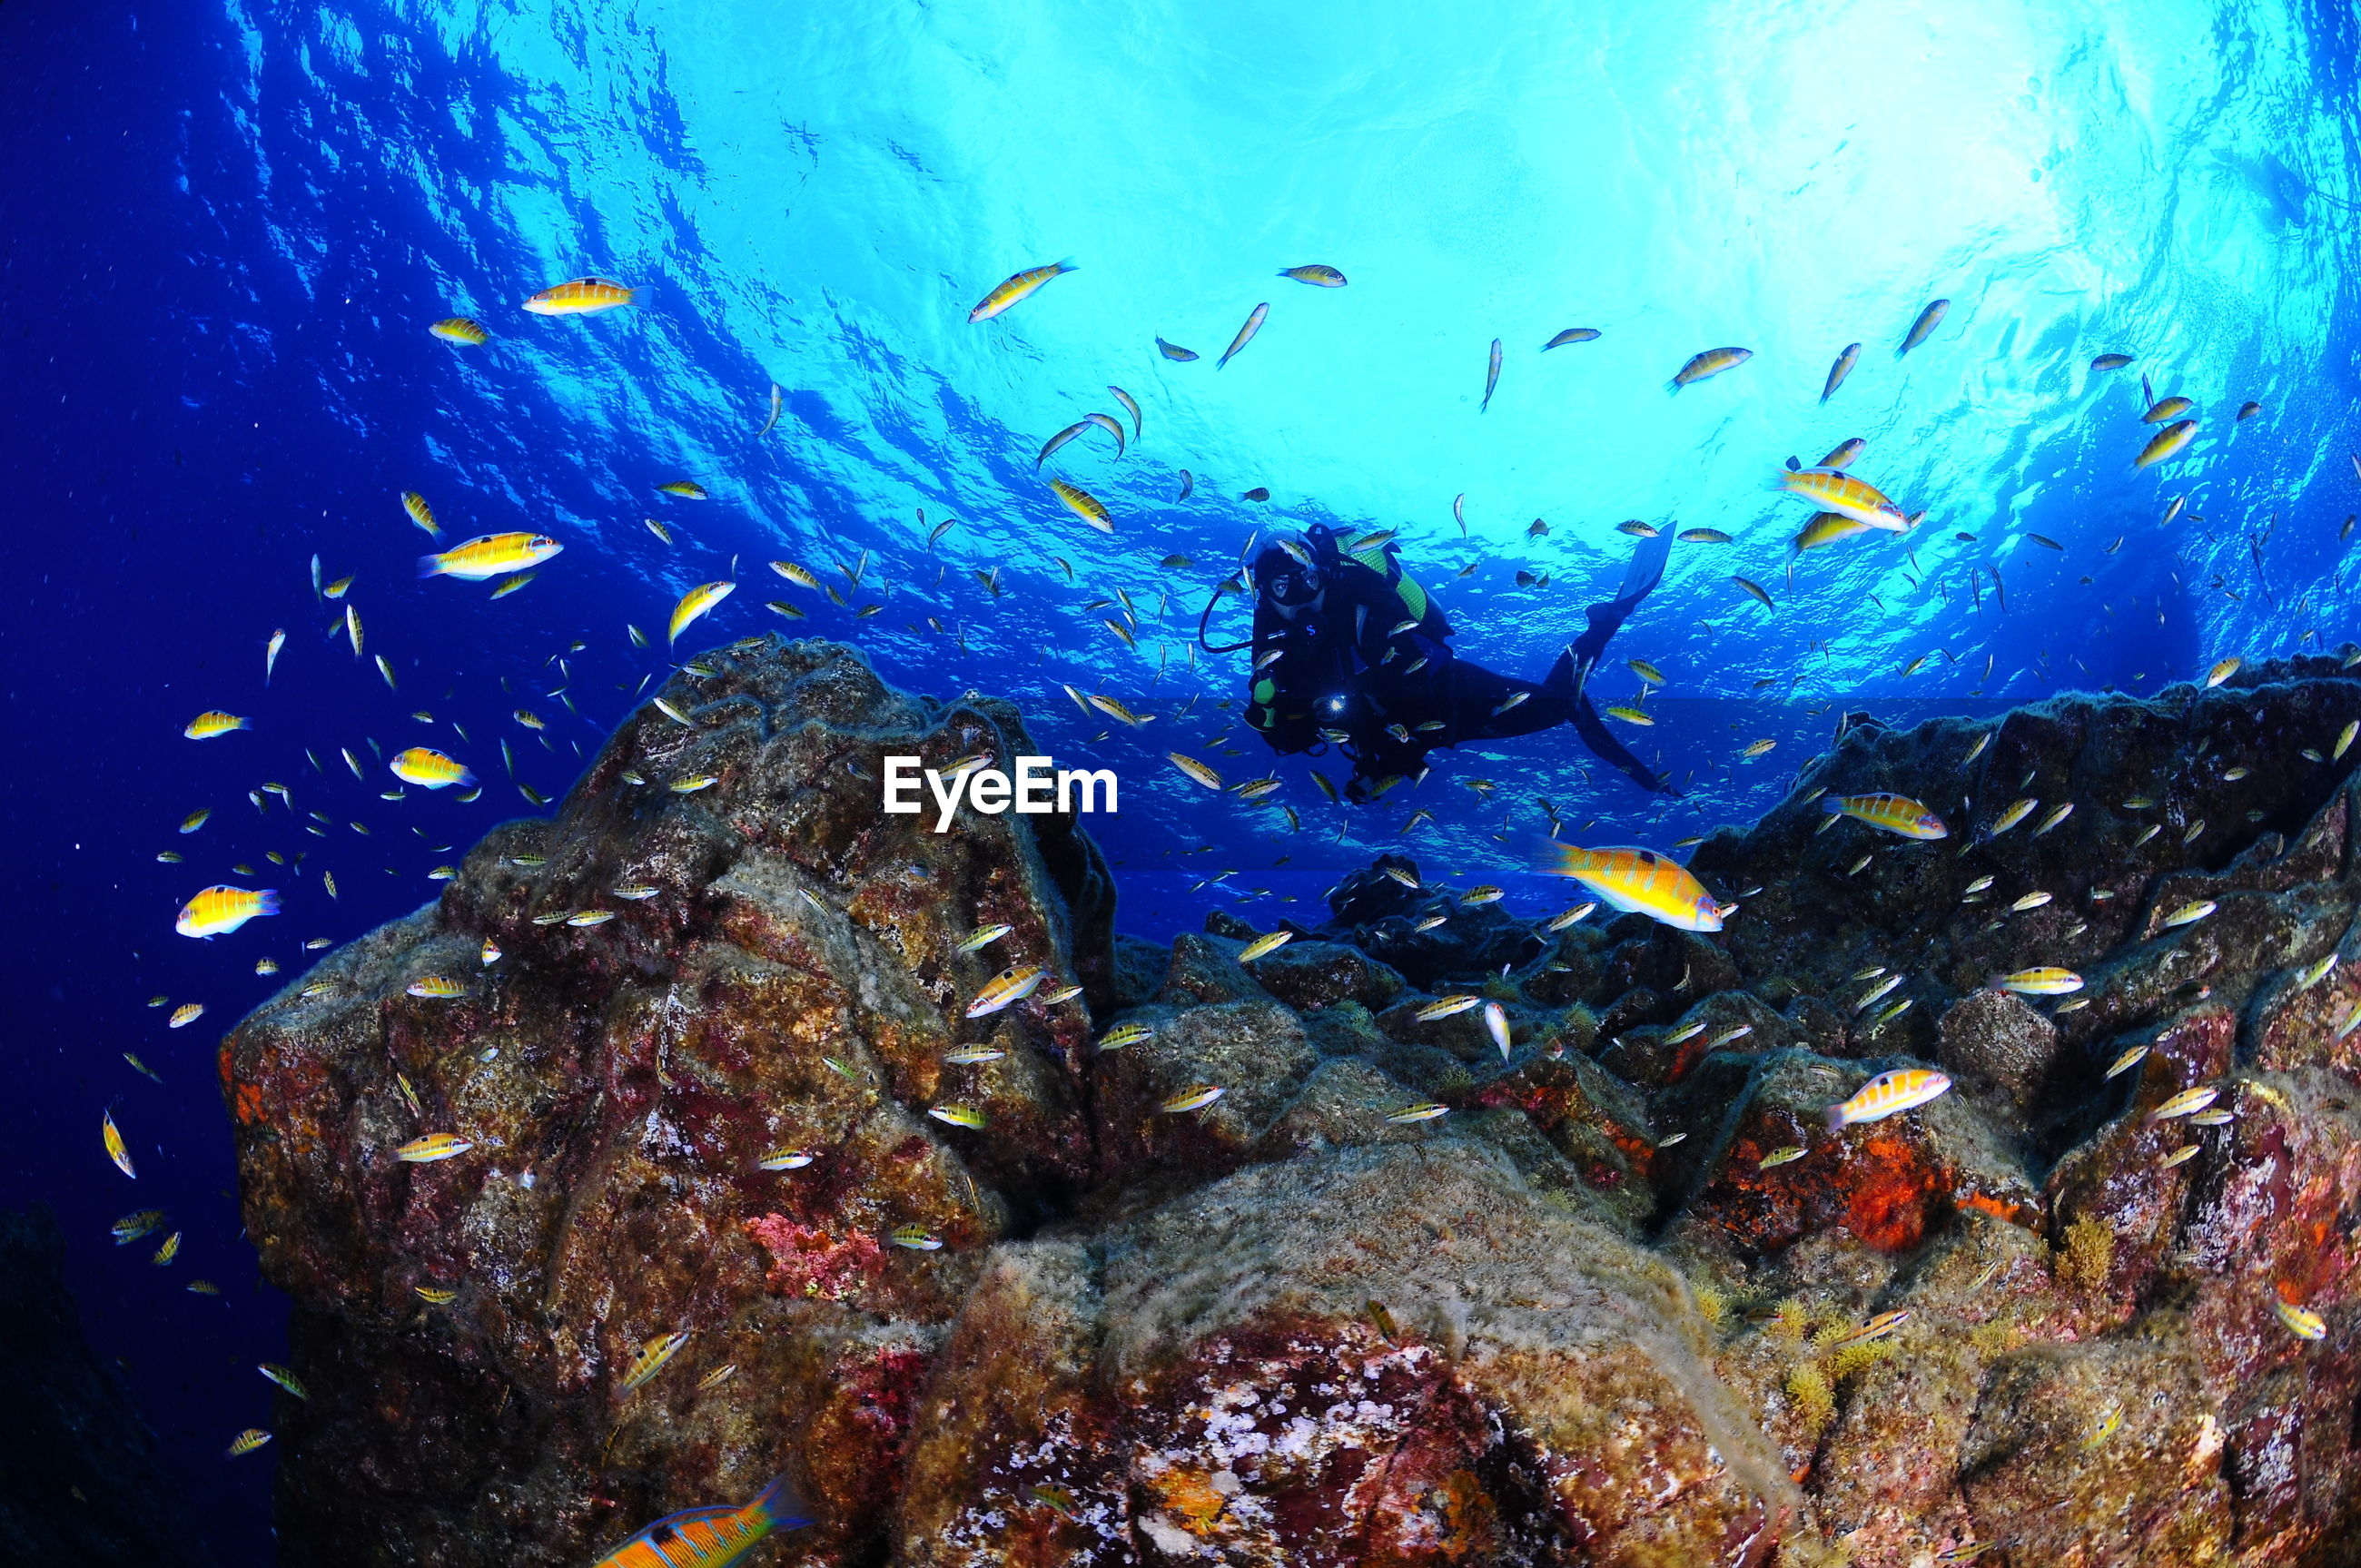 Underwater view of fish and scuba diver